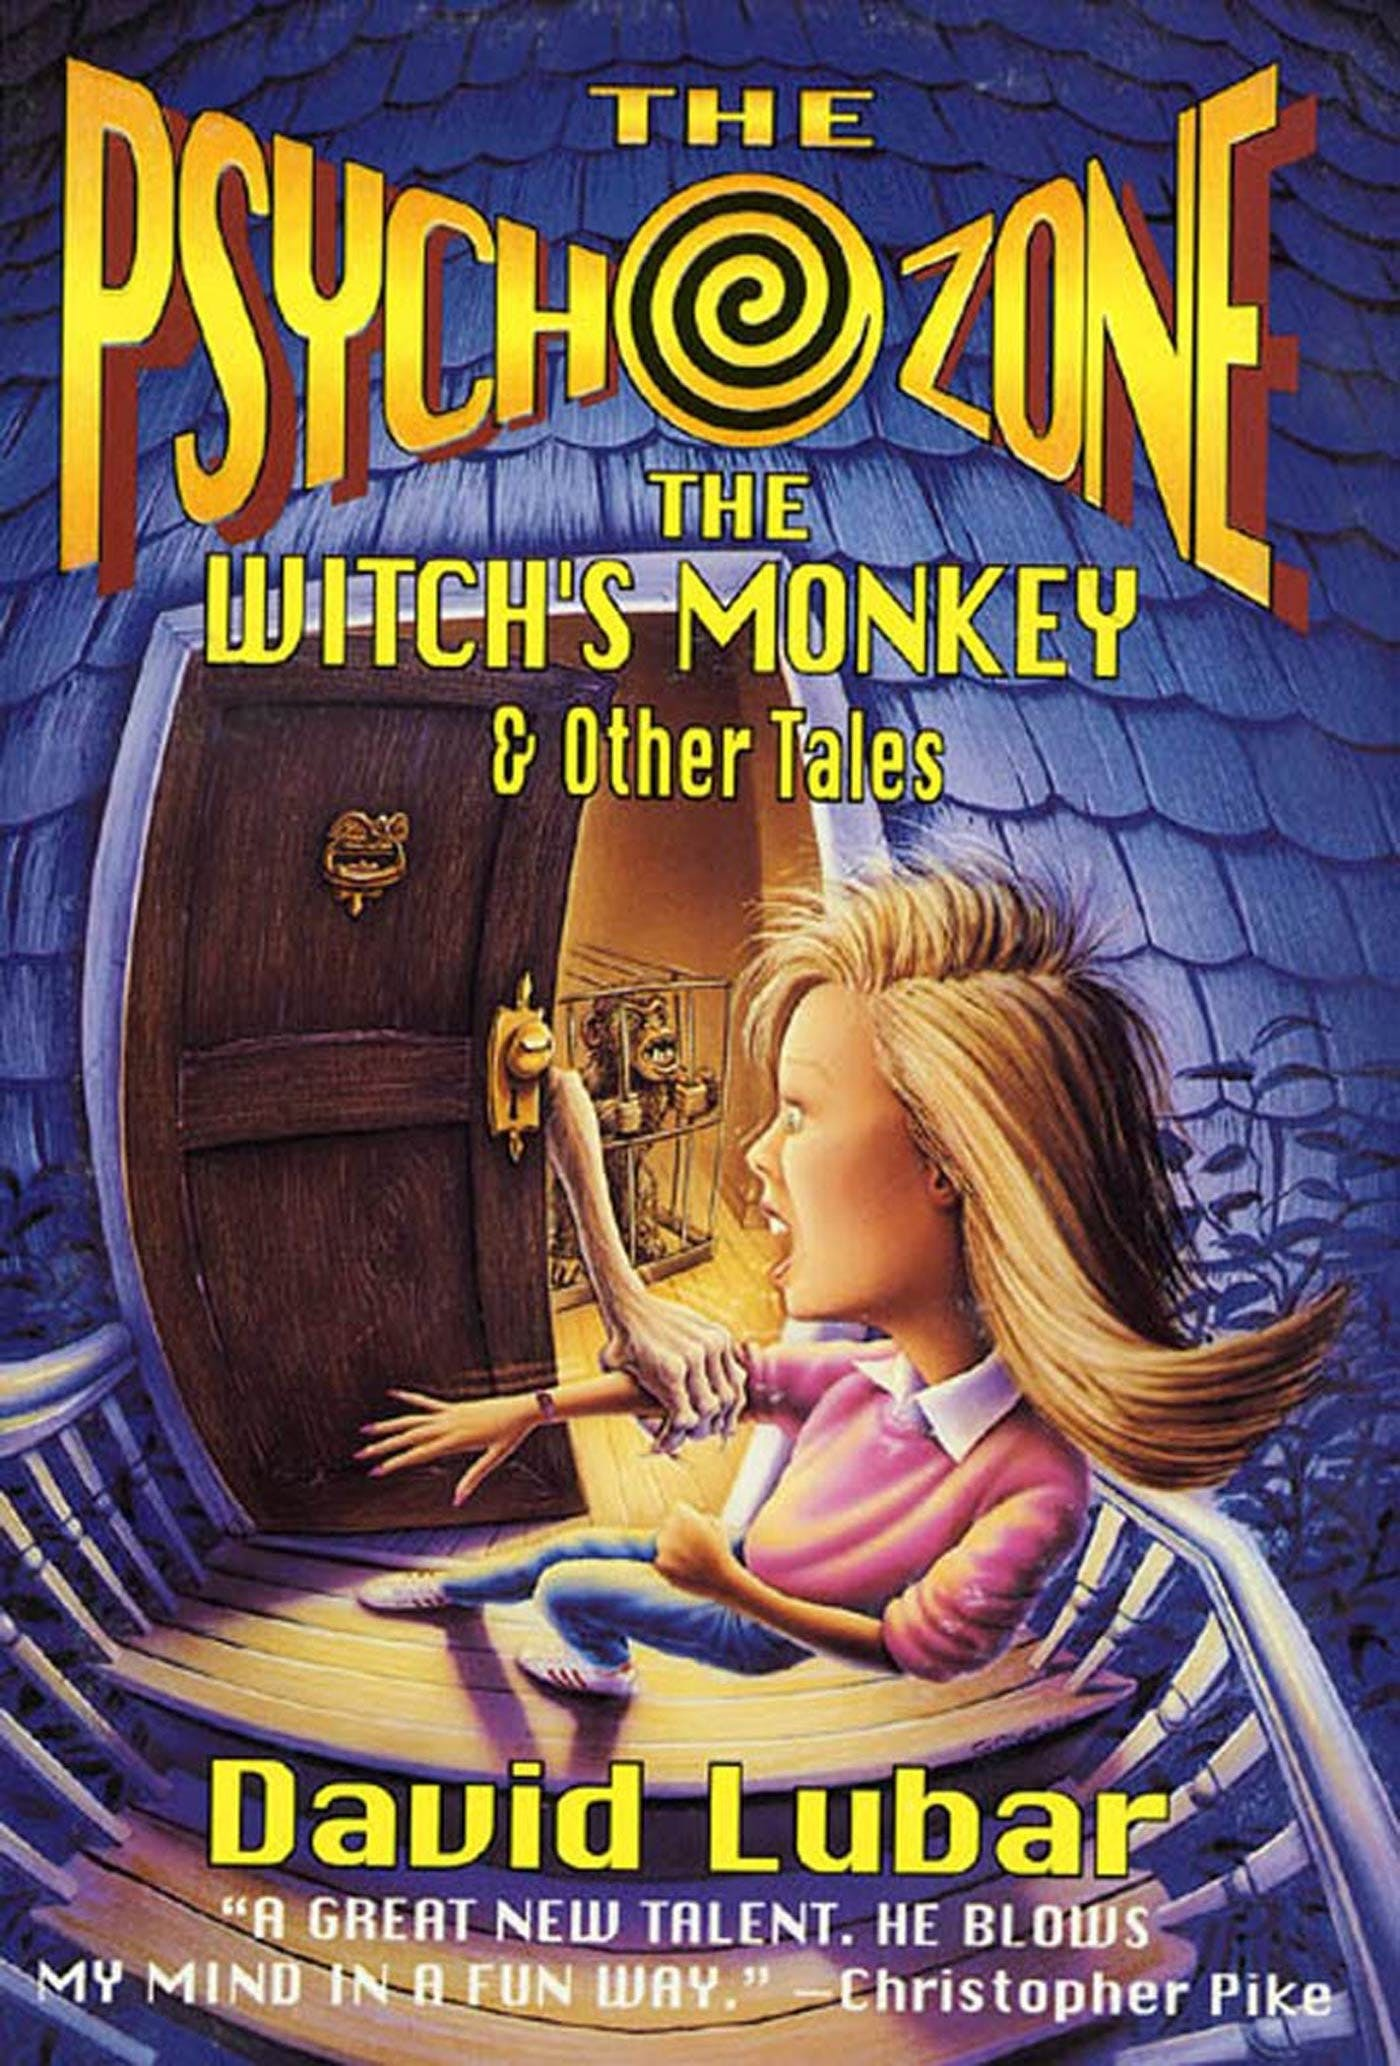 Image of The Psychozone: The Witches' Monkey and Other Tales